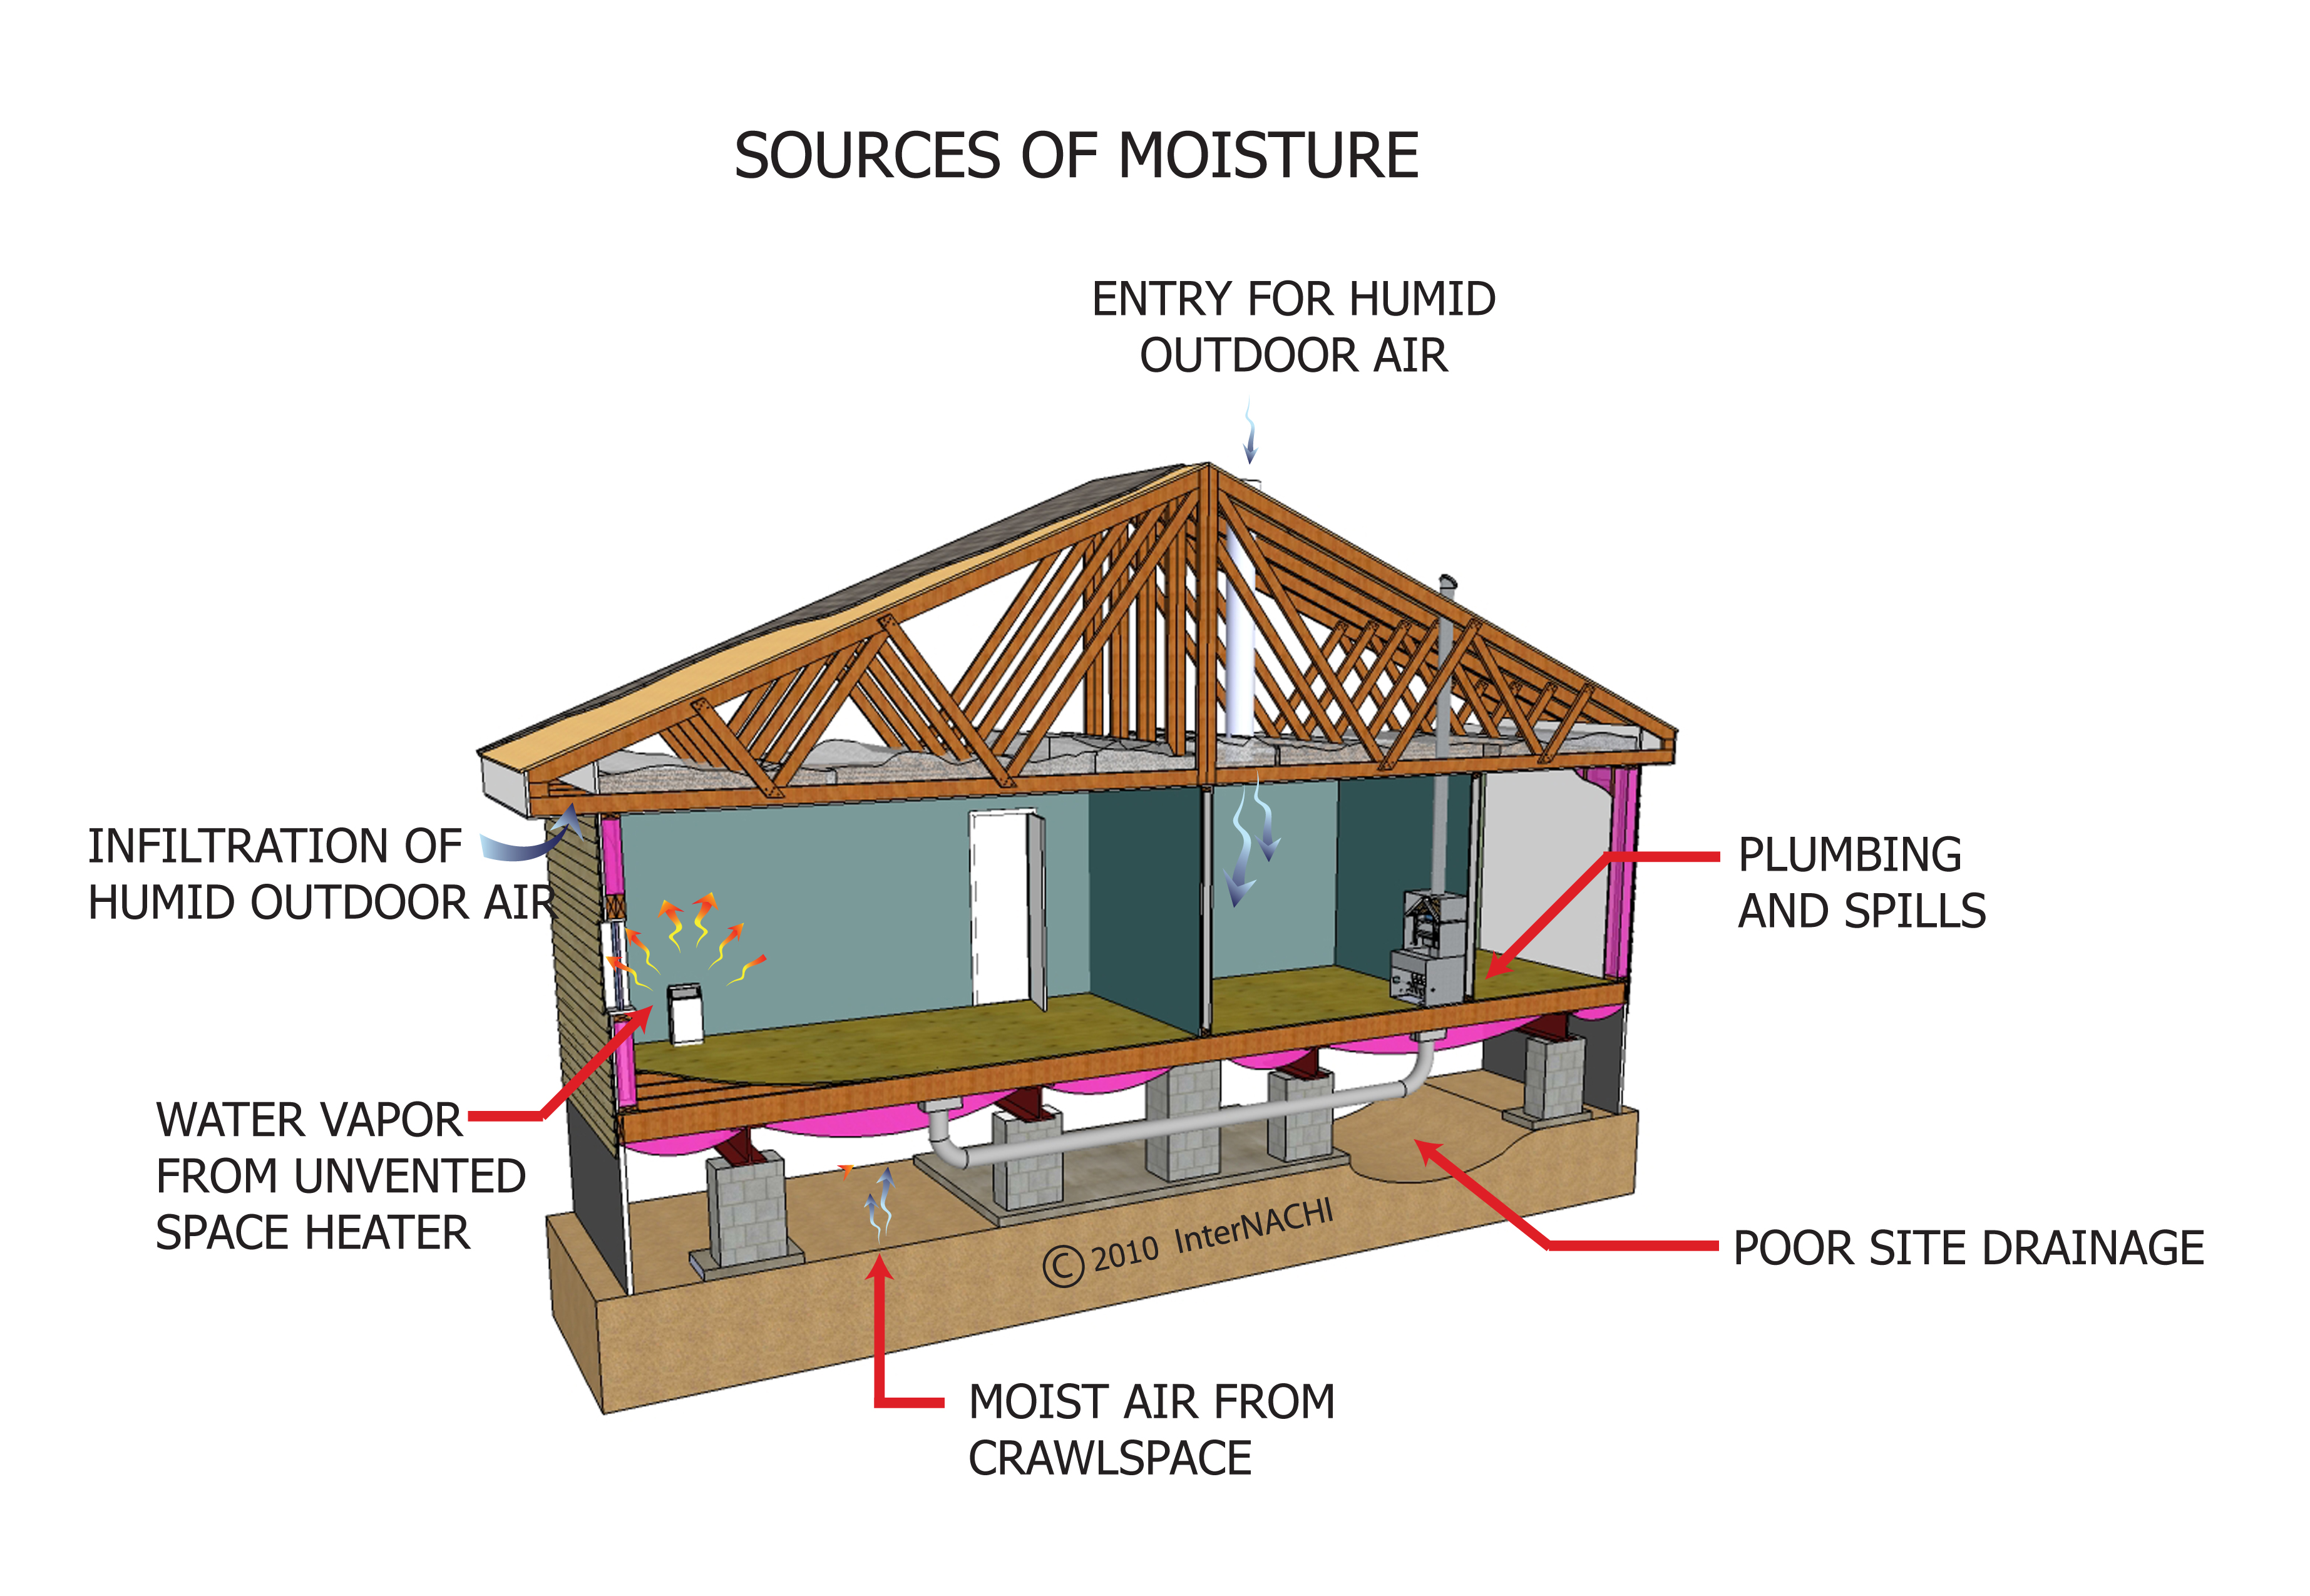 Tallahassee Home inspection - Moisture intrusion into a home